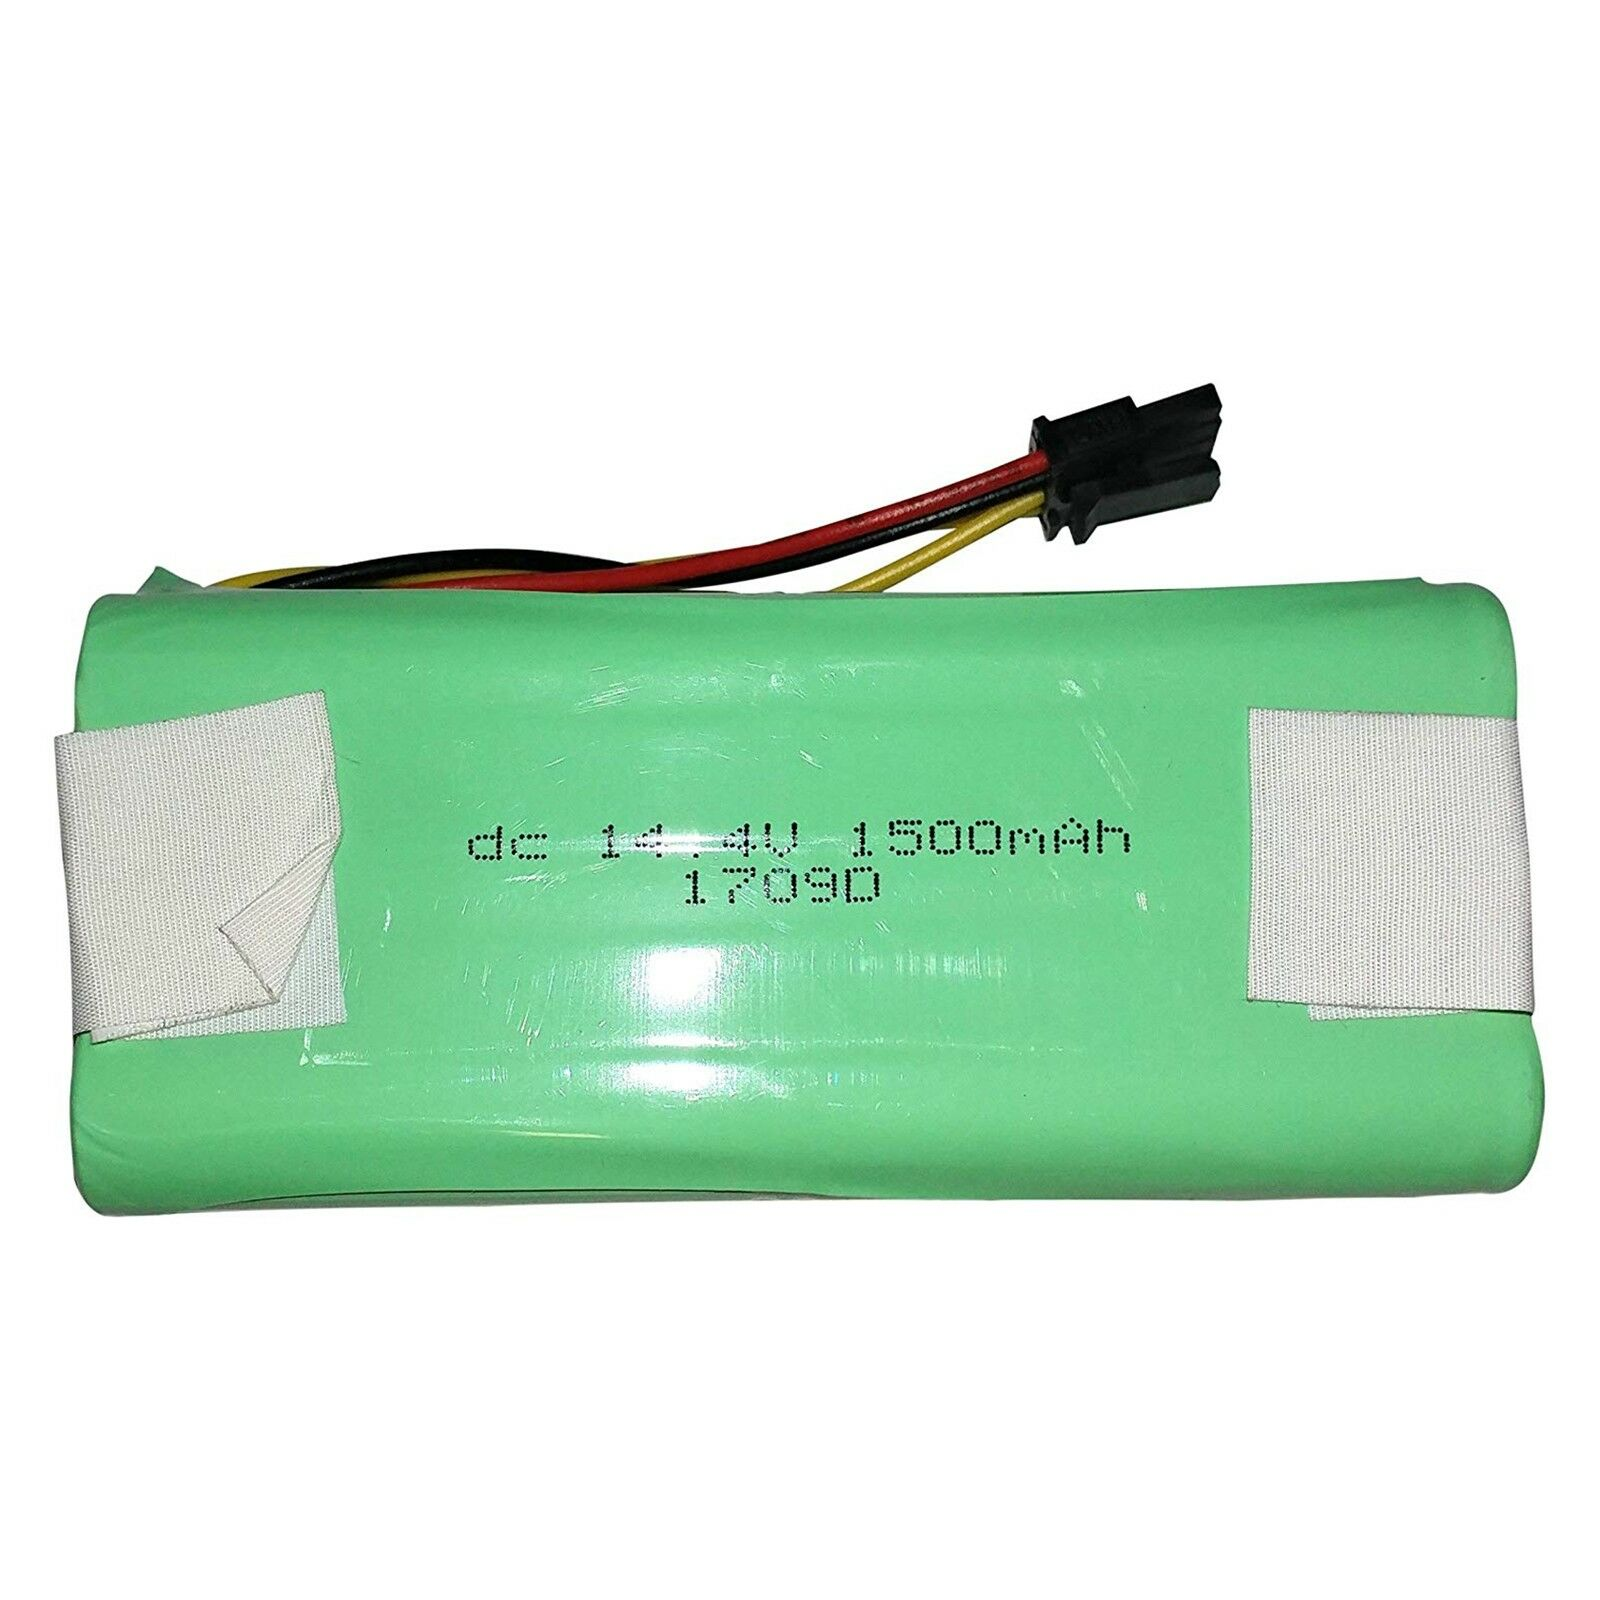 Ni-MH Rechargeable Battery for Pyle PUCRC95 Pure Clean Robot Vacuum Cleaner\